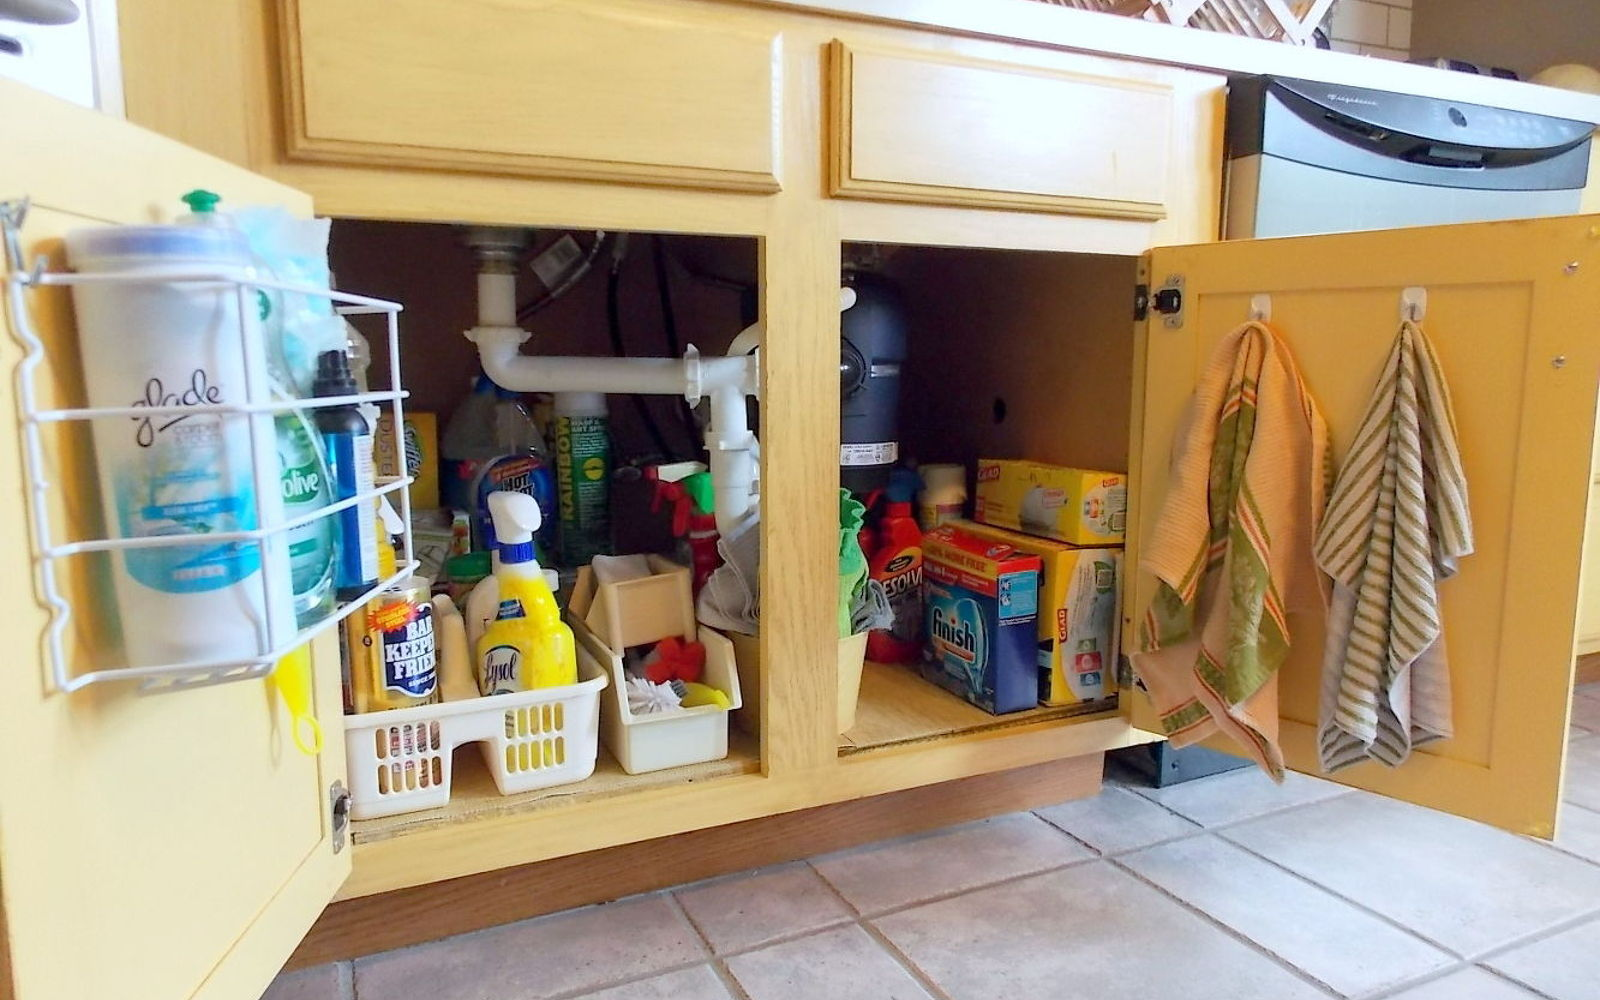 Kitchen Cabinets Pull Out Drawers The 15 Smartest Storage Hacks For Under Your Sink Hometalk